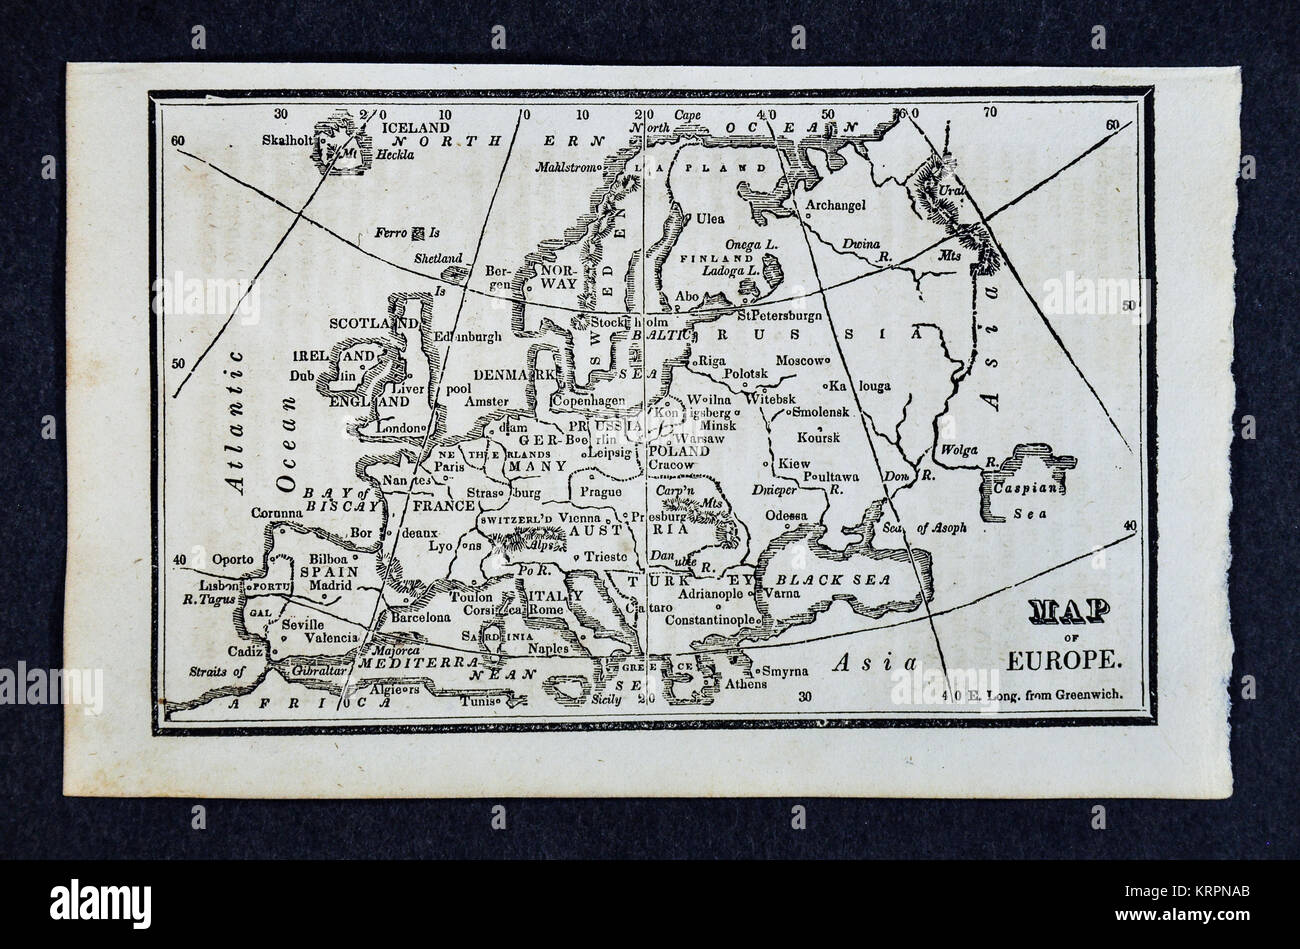 1830 Nathan Hale Map - Europe Continent - Spain France England Germany Italy Austria Norway Sweden Finland Russia - Stock Image